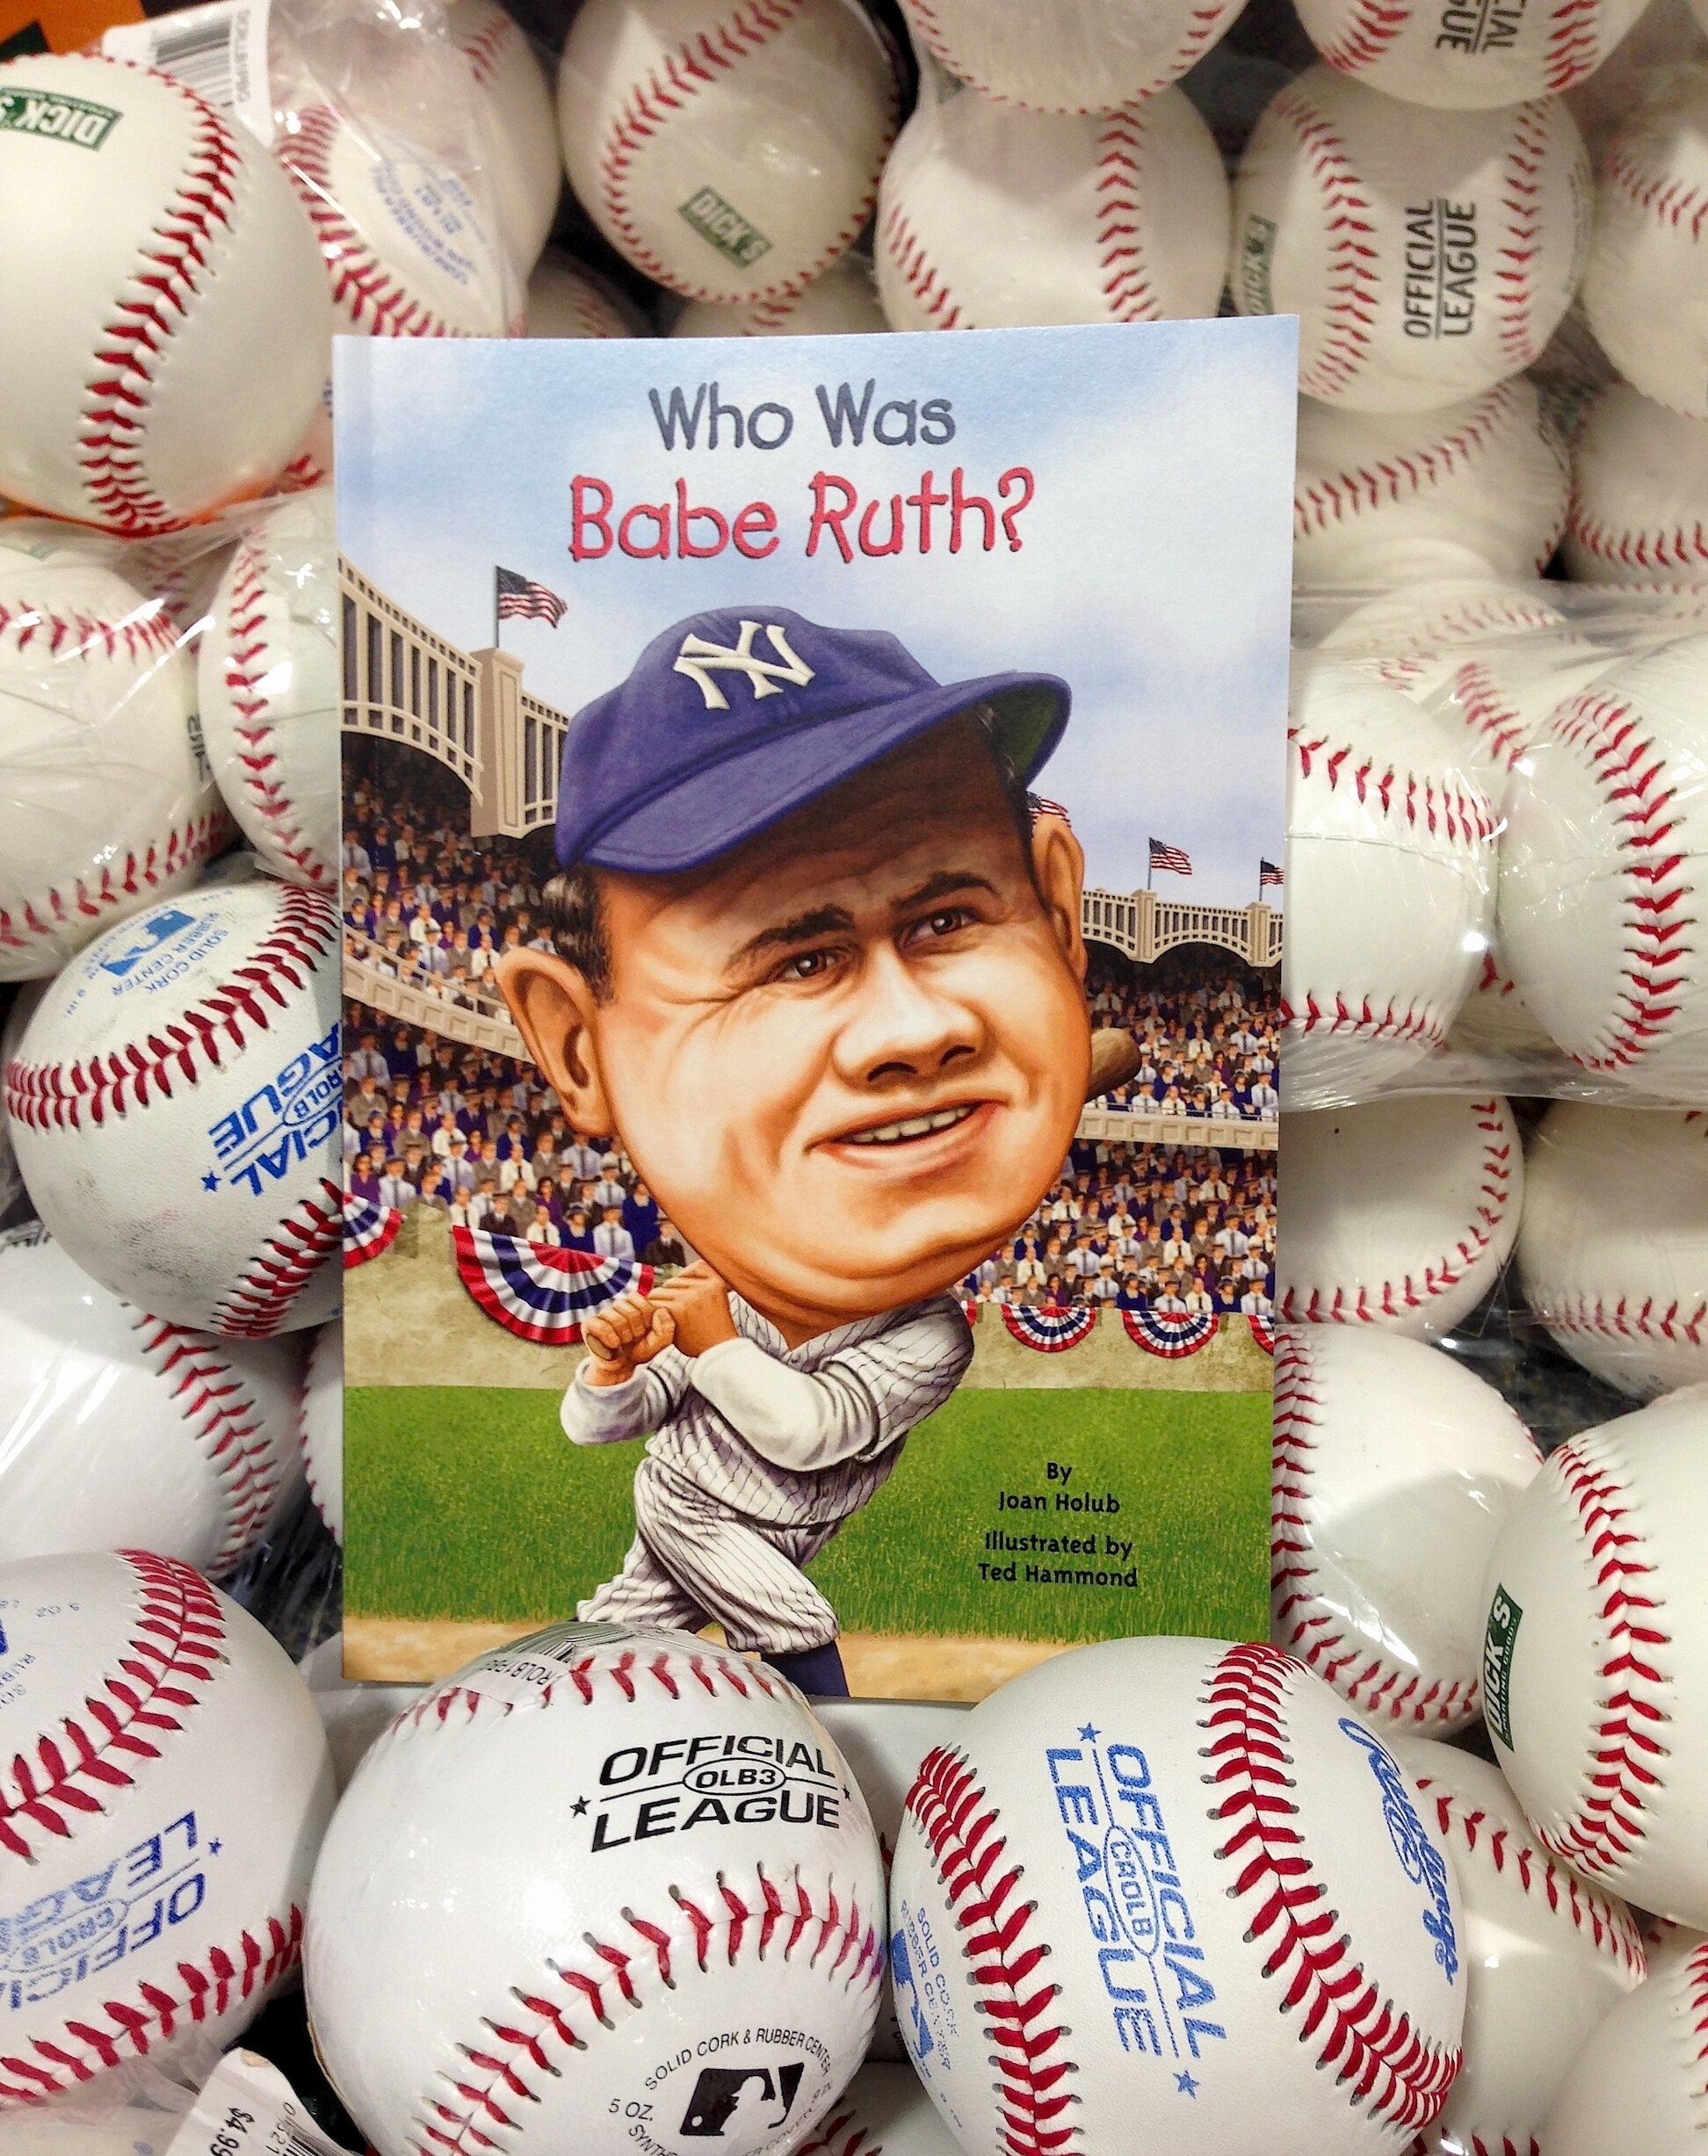 Who Was Babe Ruth? a biography for ages 6-12 and up by Joan Holub